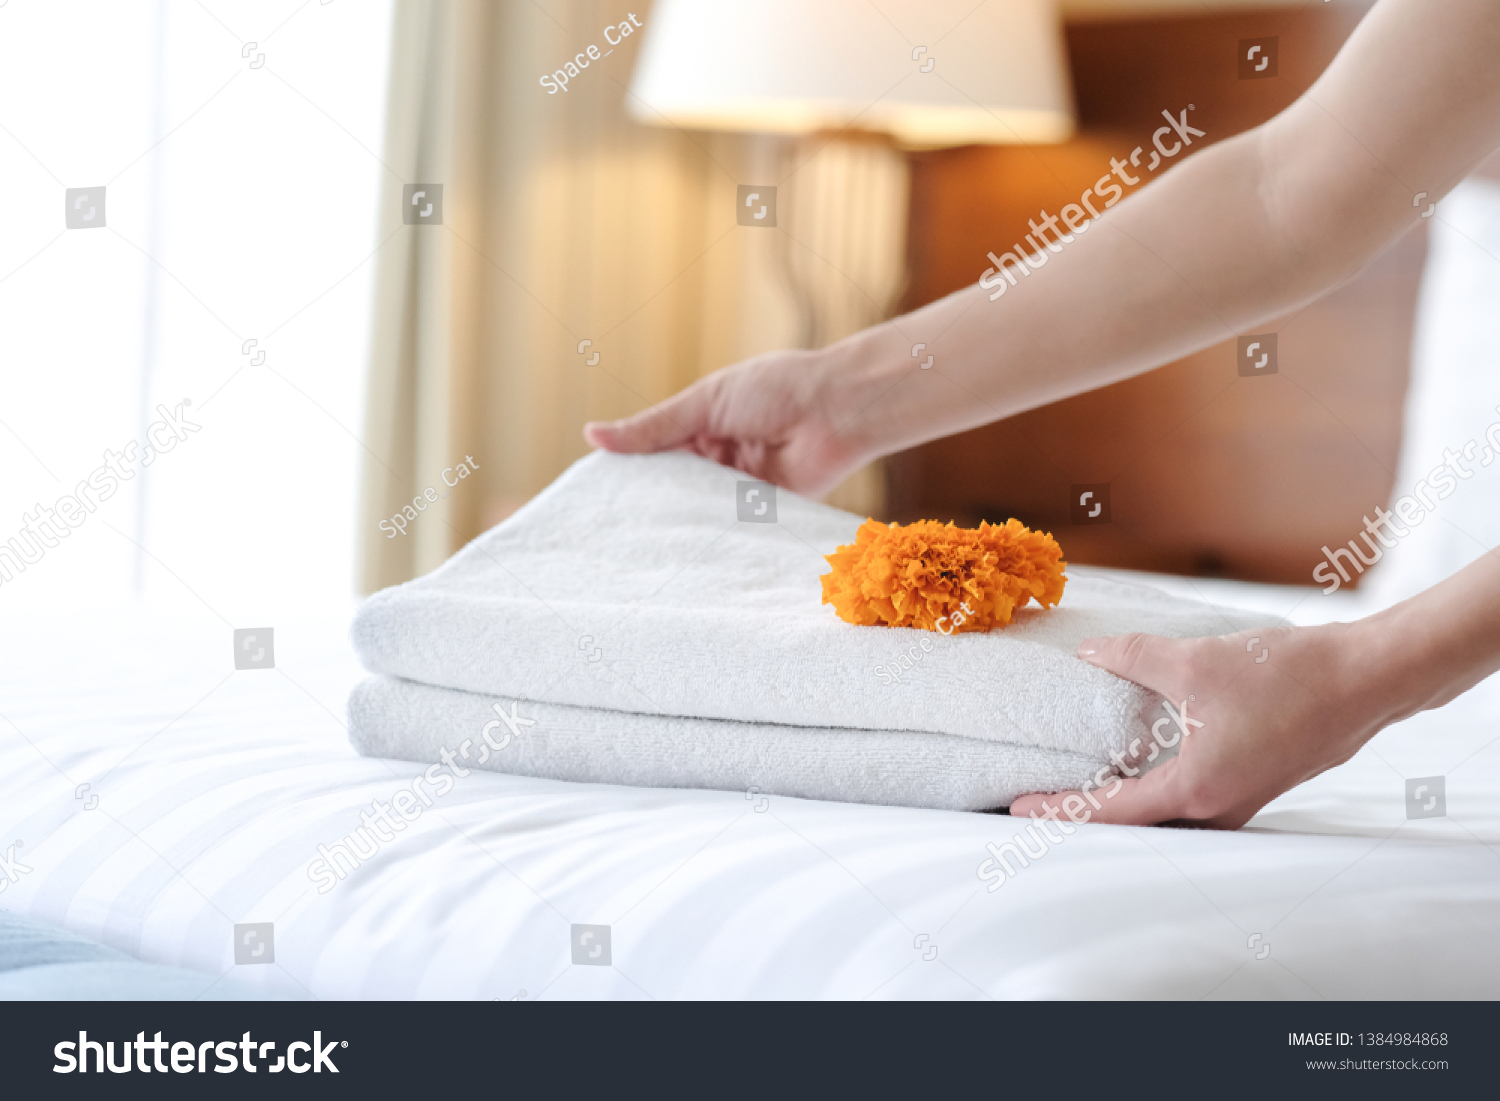 Hands of hotel maid bringing fresh towels to the room #1384984868